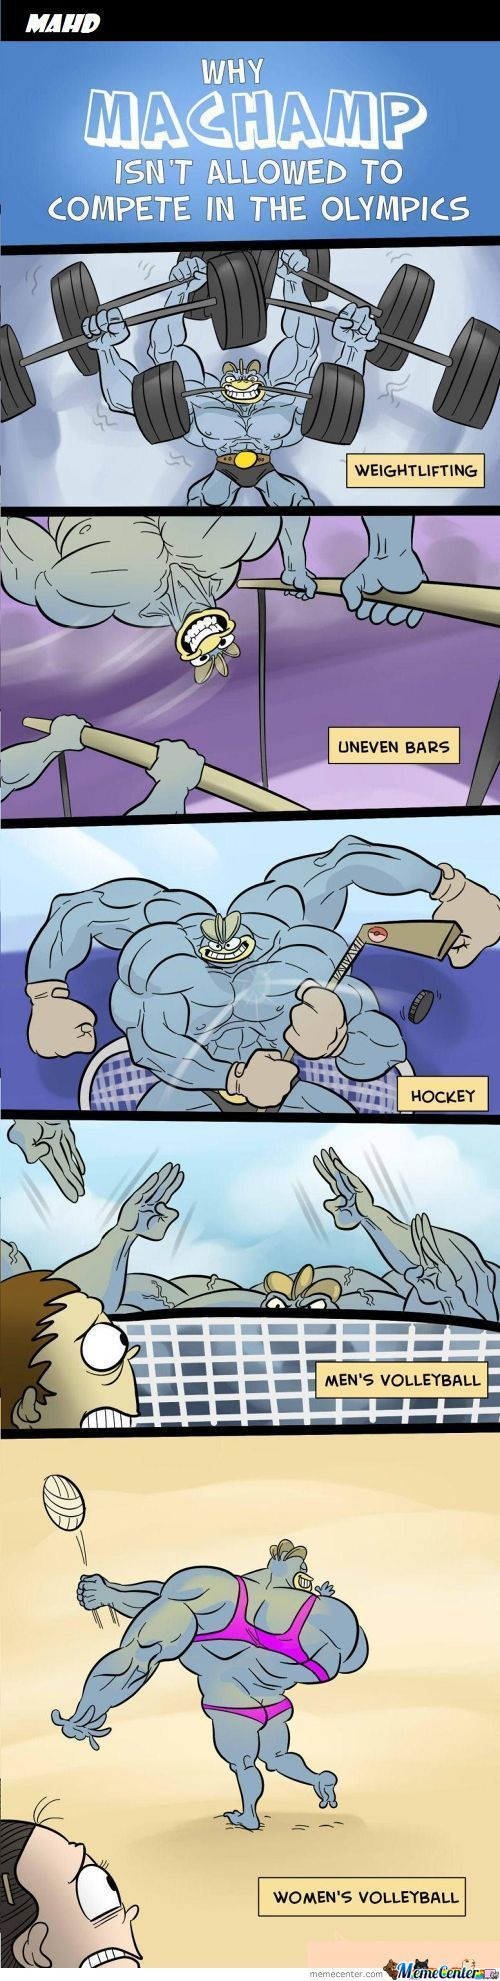 Why Machamp Isn't Allow To Compete In The Olympics